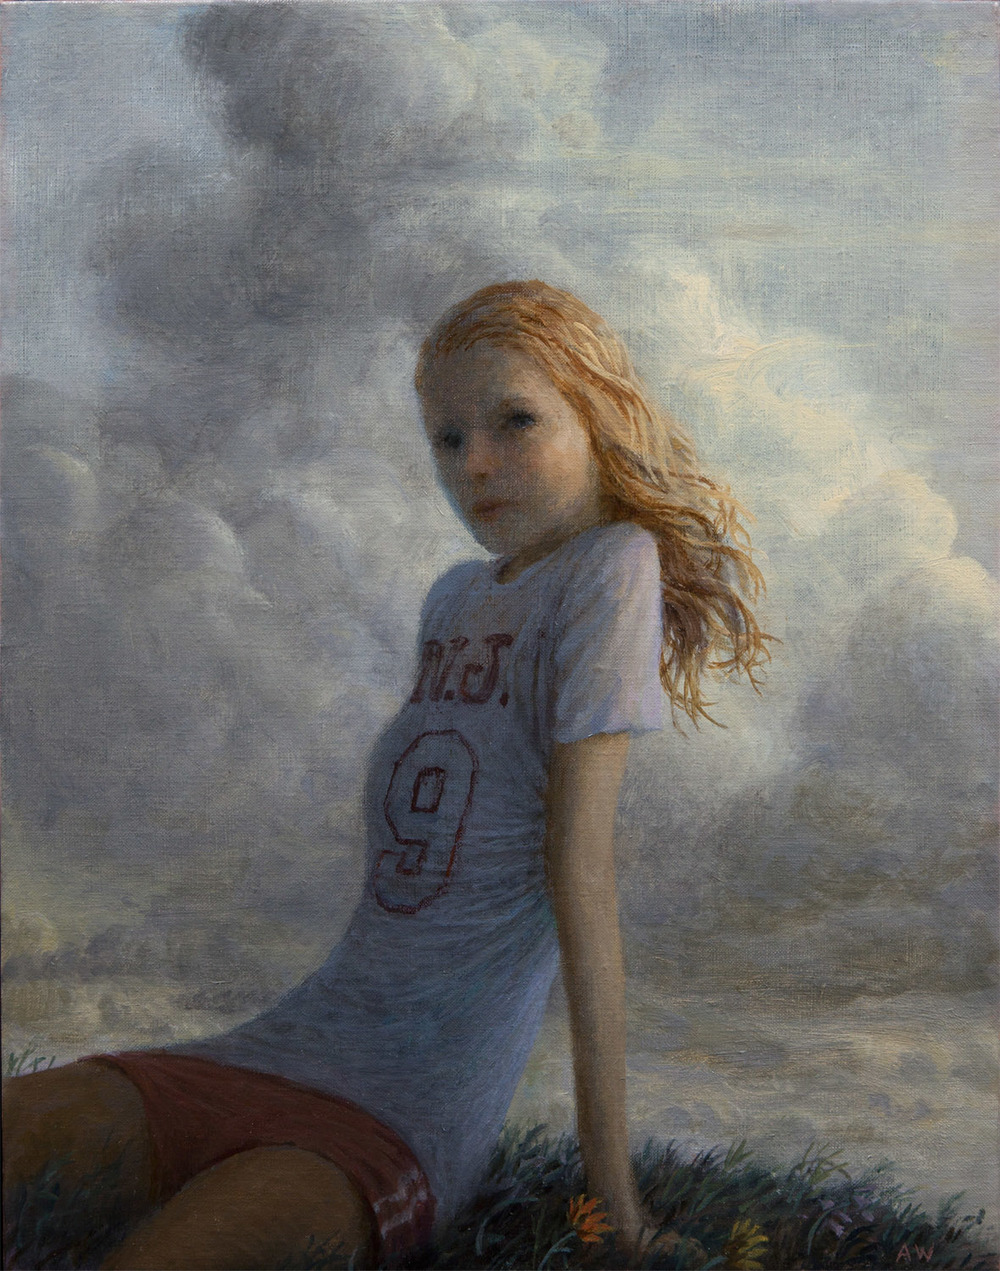 Krystal , oil on linen, 14 x 11 in, 2016